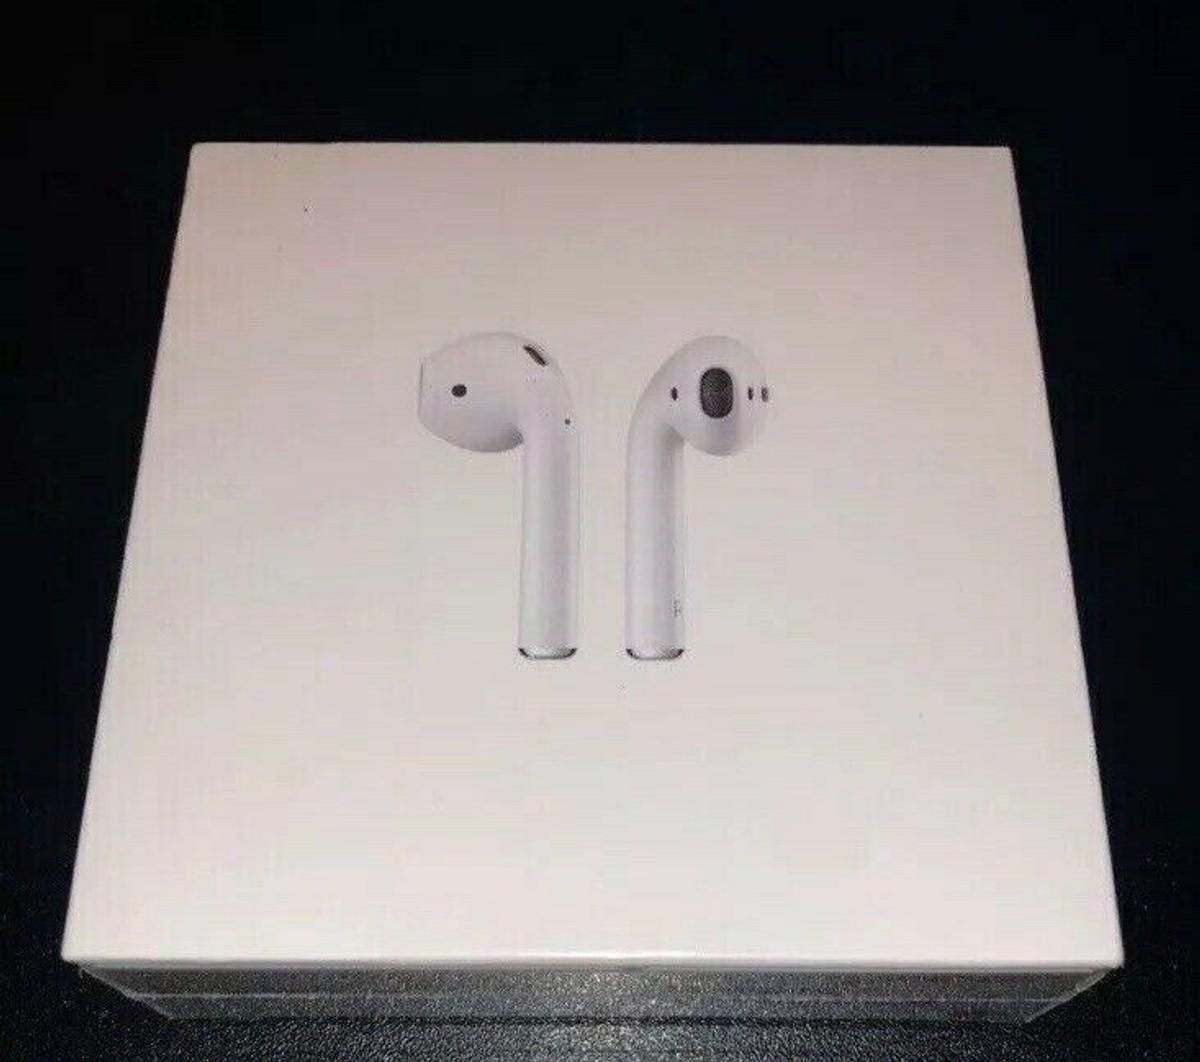 *NO INTERNATIONAL BANK SCAMMERS PLEASE* Genuine Apple AirPods brand new 2nd generation Bought them but changed my mind Want them gone asap Brand new and sealed Free delivery within Manchester